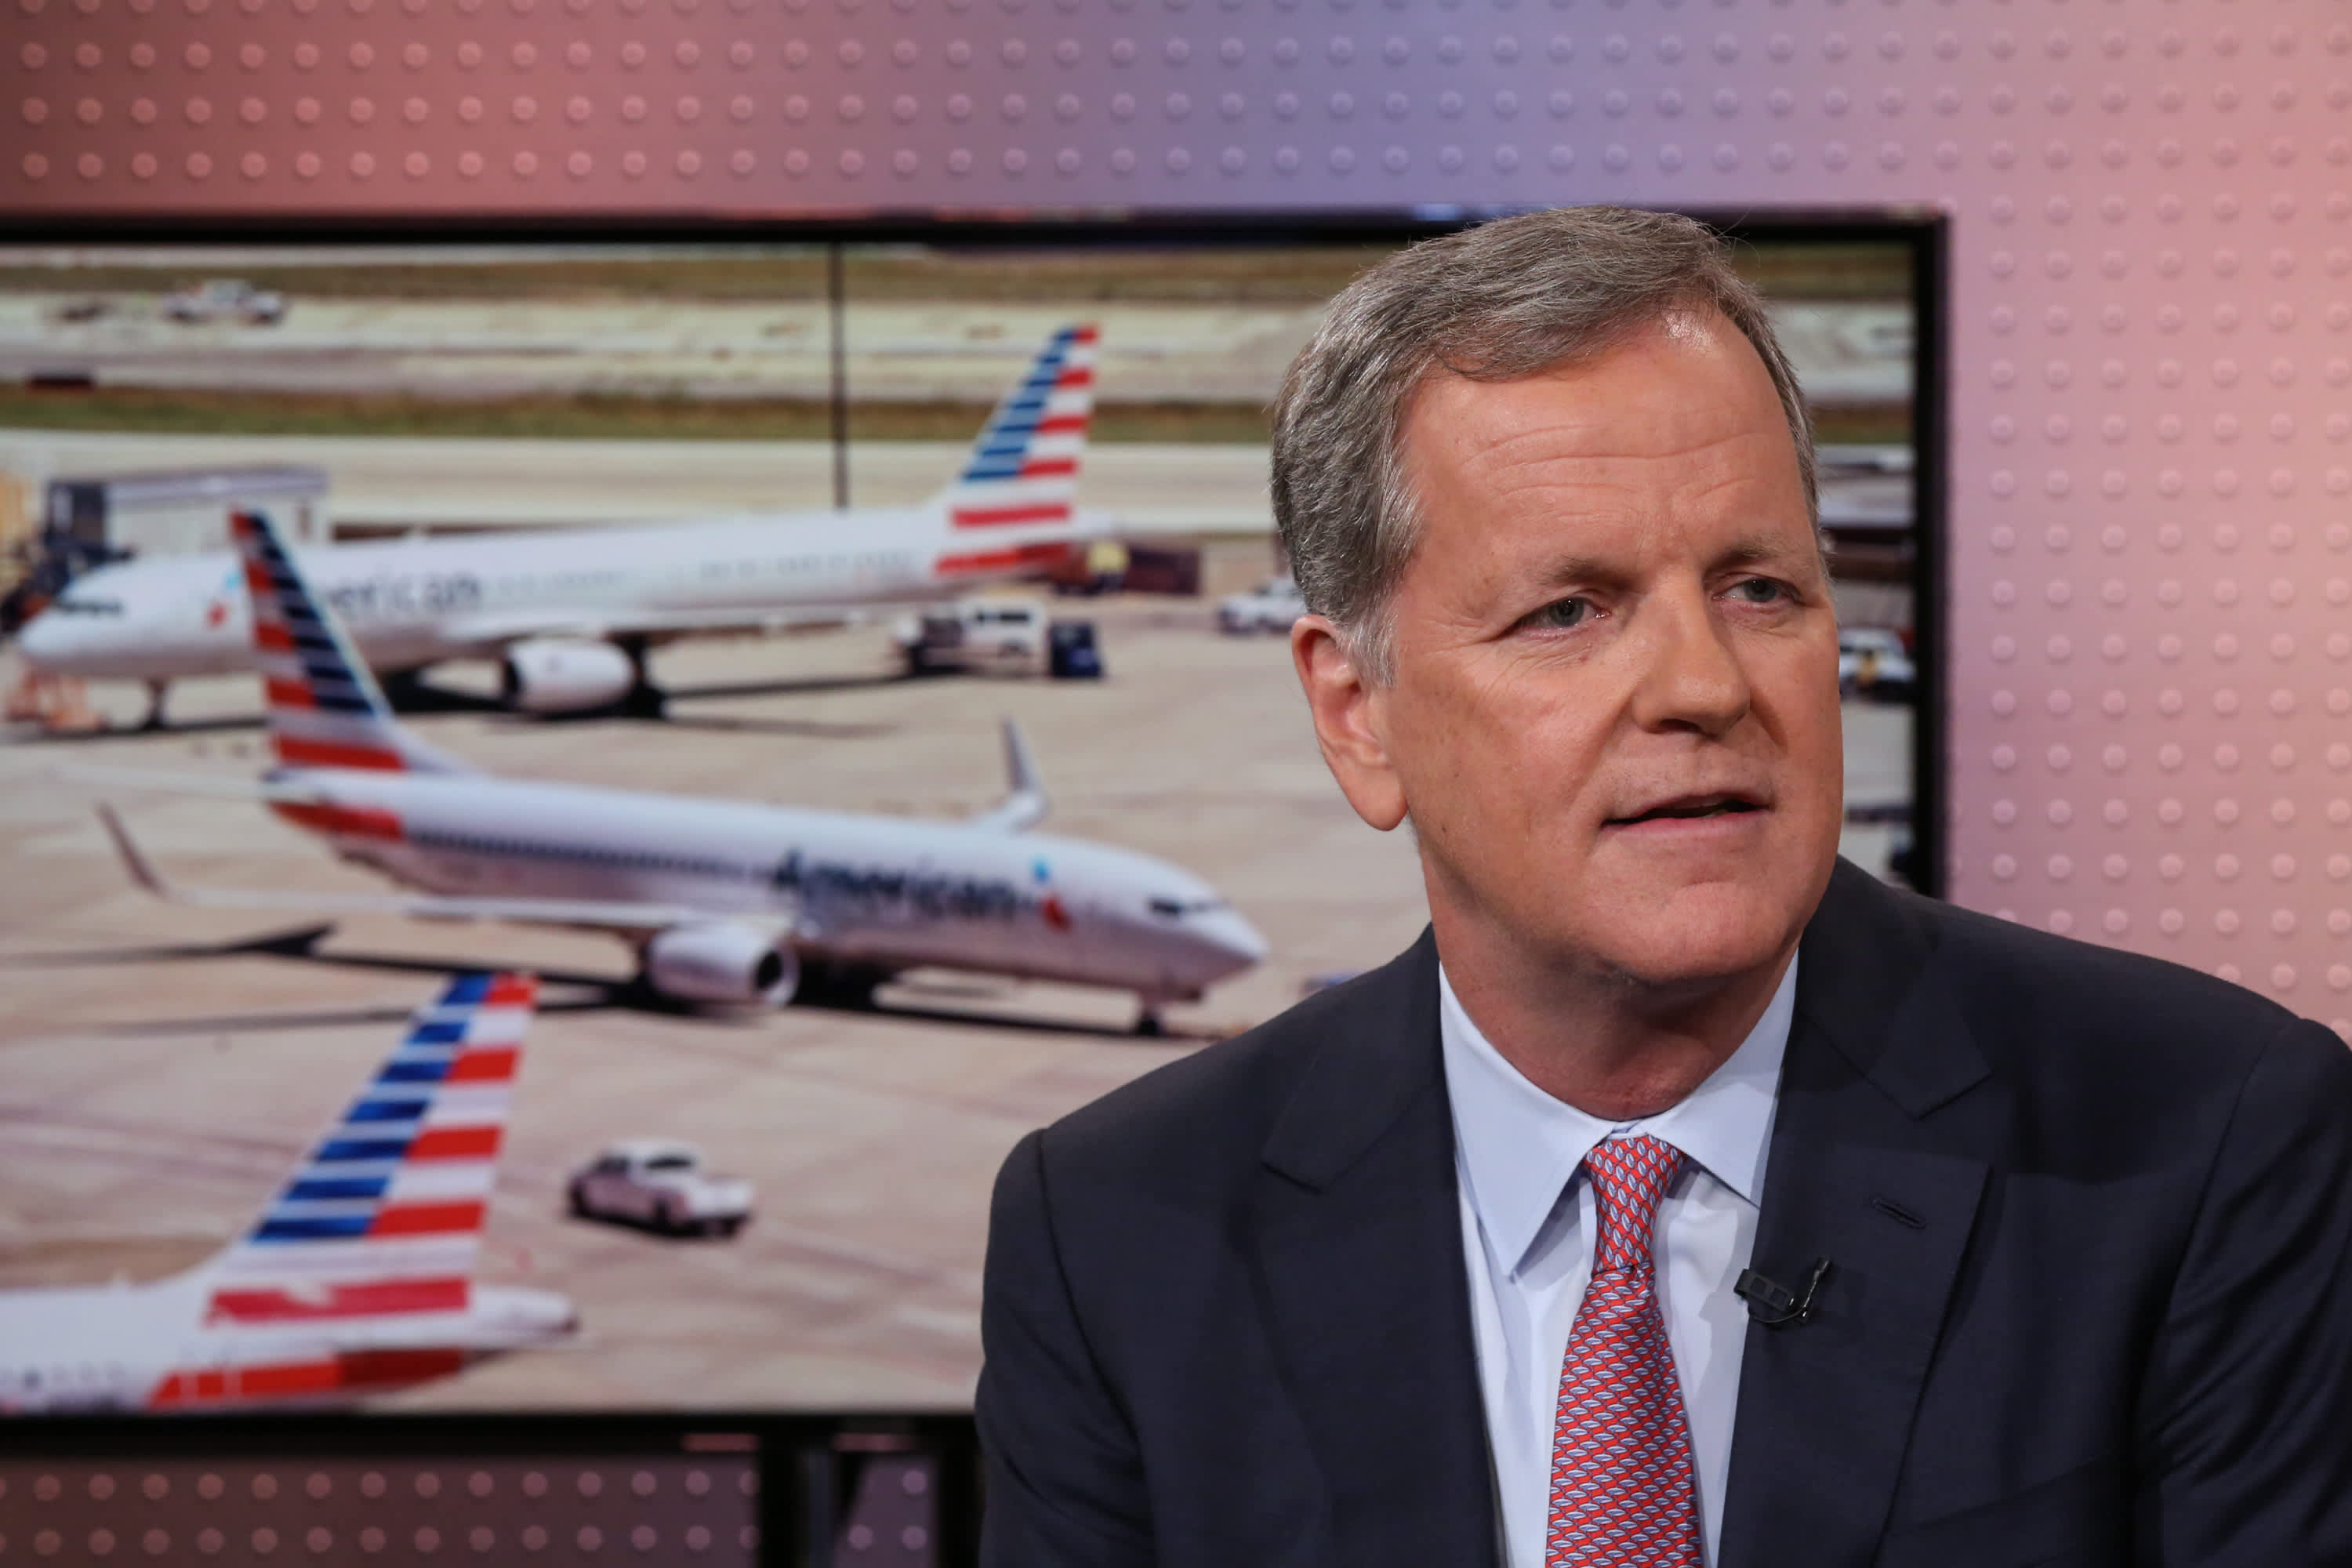 American Airlines CEO says it 'feels like we're at the bottom' as revenue tumbles 90%